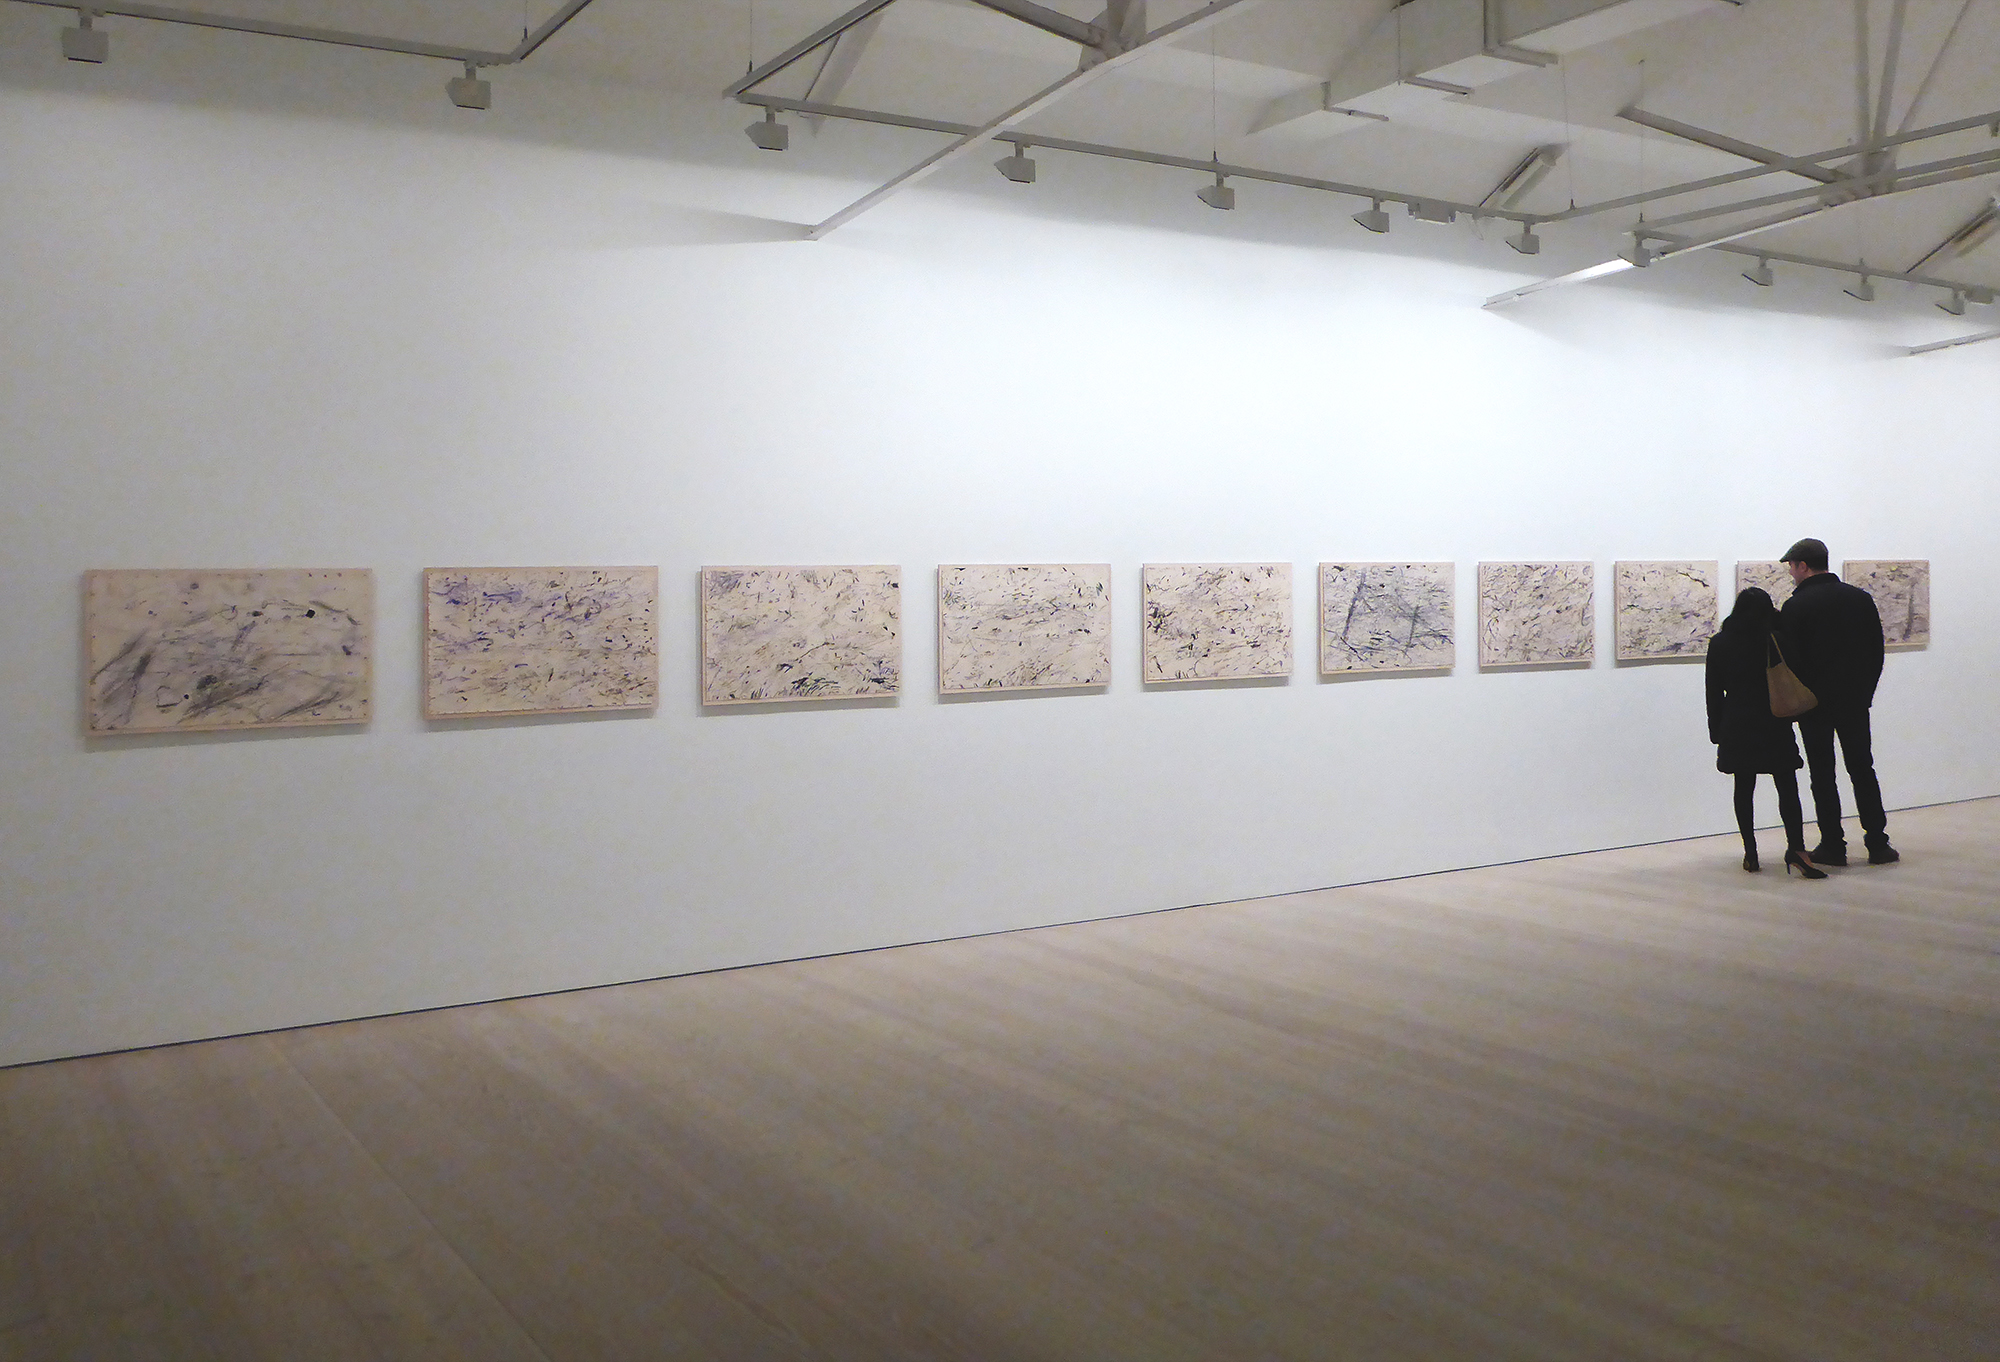 Saatchi Gallery Installation view 4.jpg